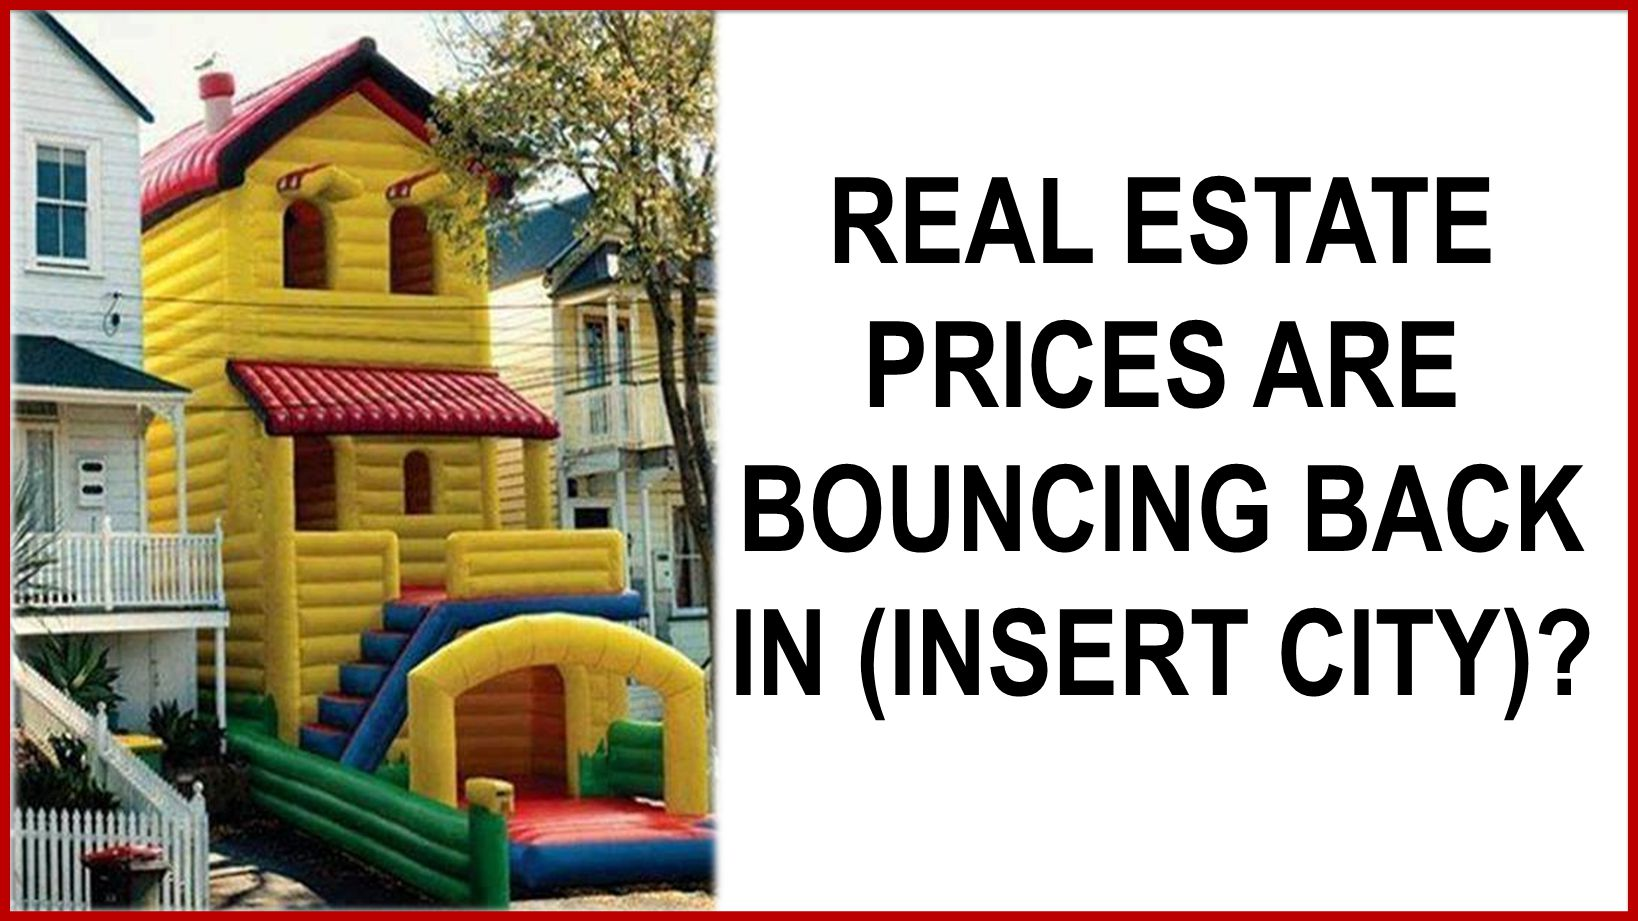 REAL ESTATE PRICES ARE BOUNCING BACK IN (INSERT CITY)